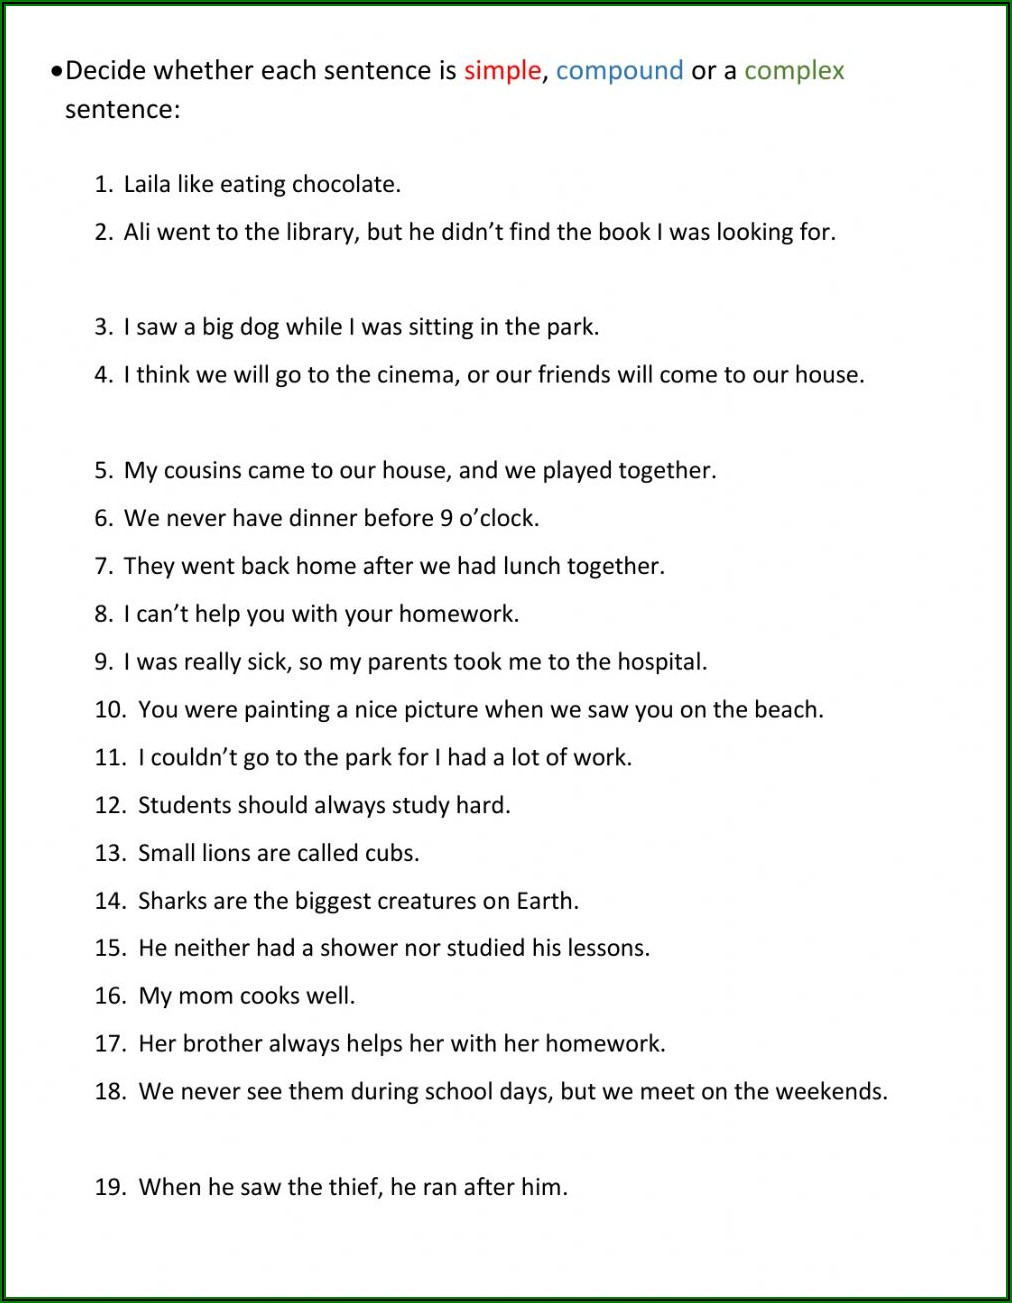 Worksheets On Simple Compound And Complex Sentences For Grade 6 Pdf